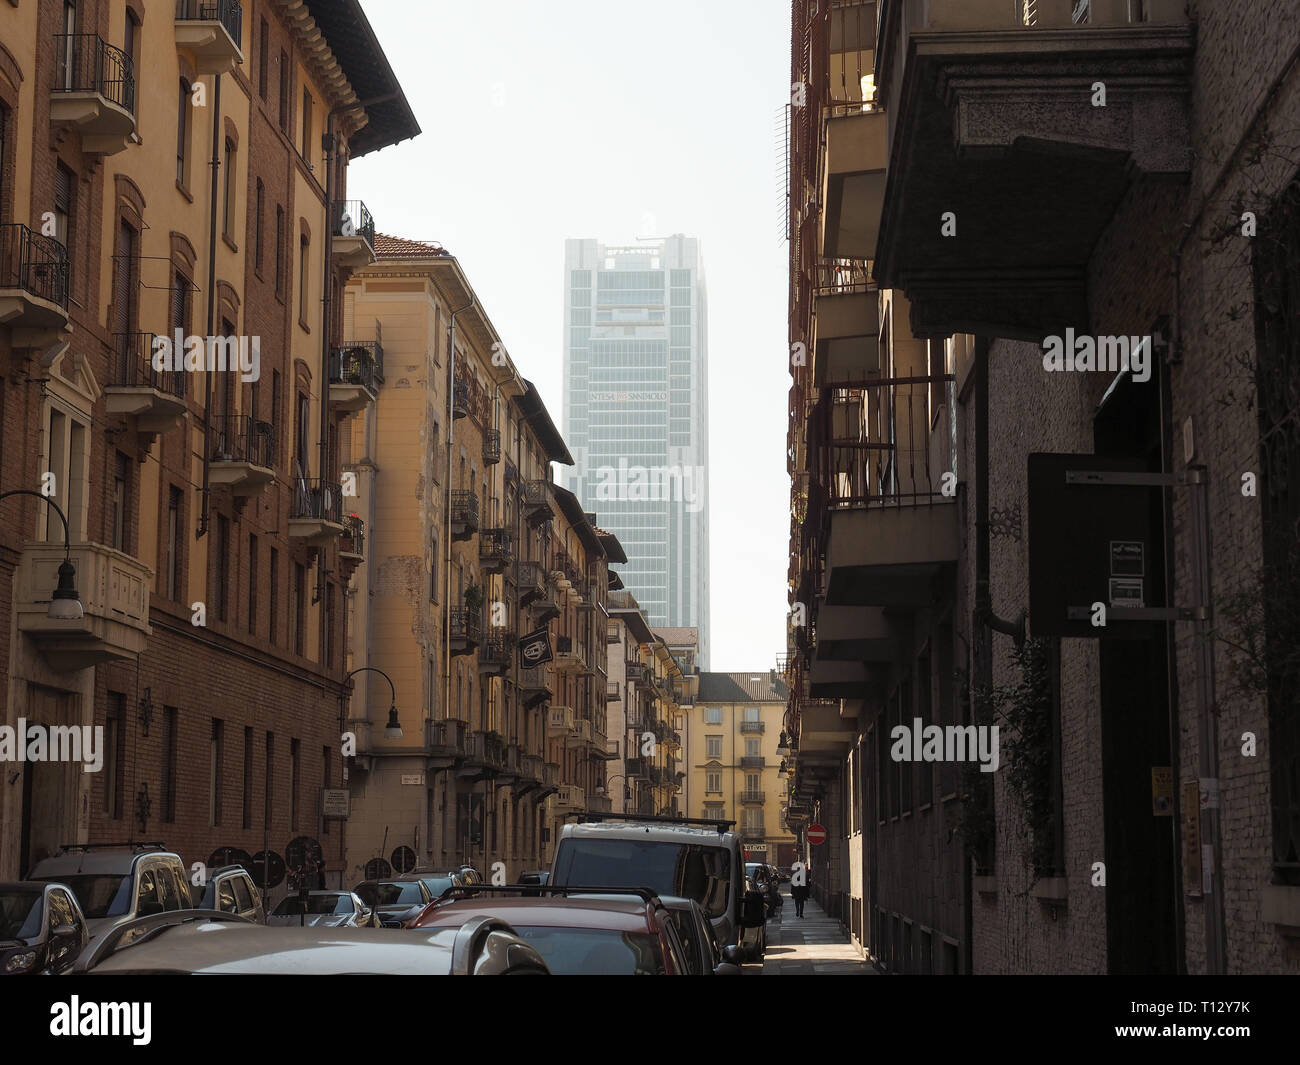 TURIN, ITALY - CIRCA FEBRUARY 2019: Intesa San Paolo headquarters skyscraper designed by Renzo Piano Stock Photo